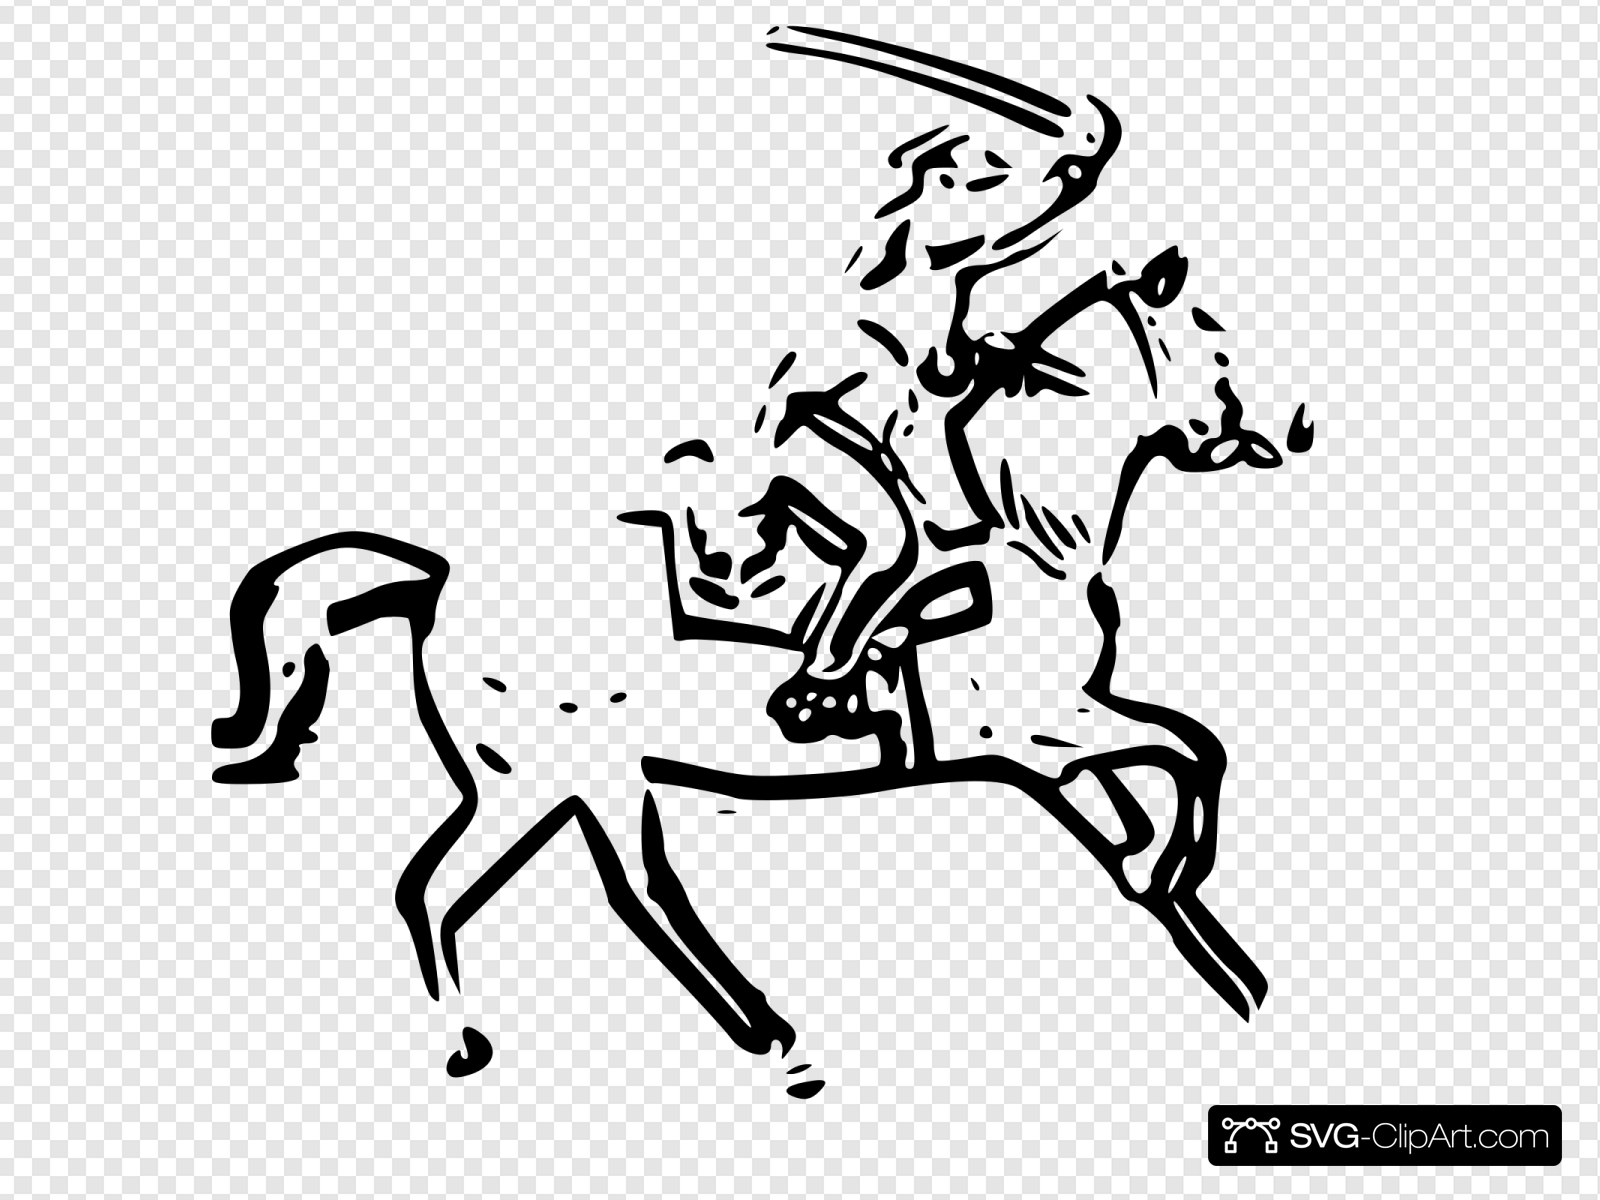 Cavalry clipart png free download Cavalry Clip art, Icon and SVG - SVG Clipart png free download